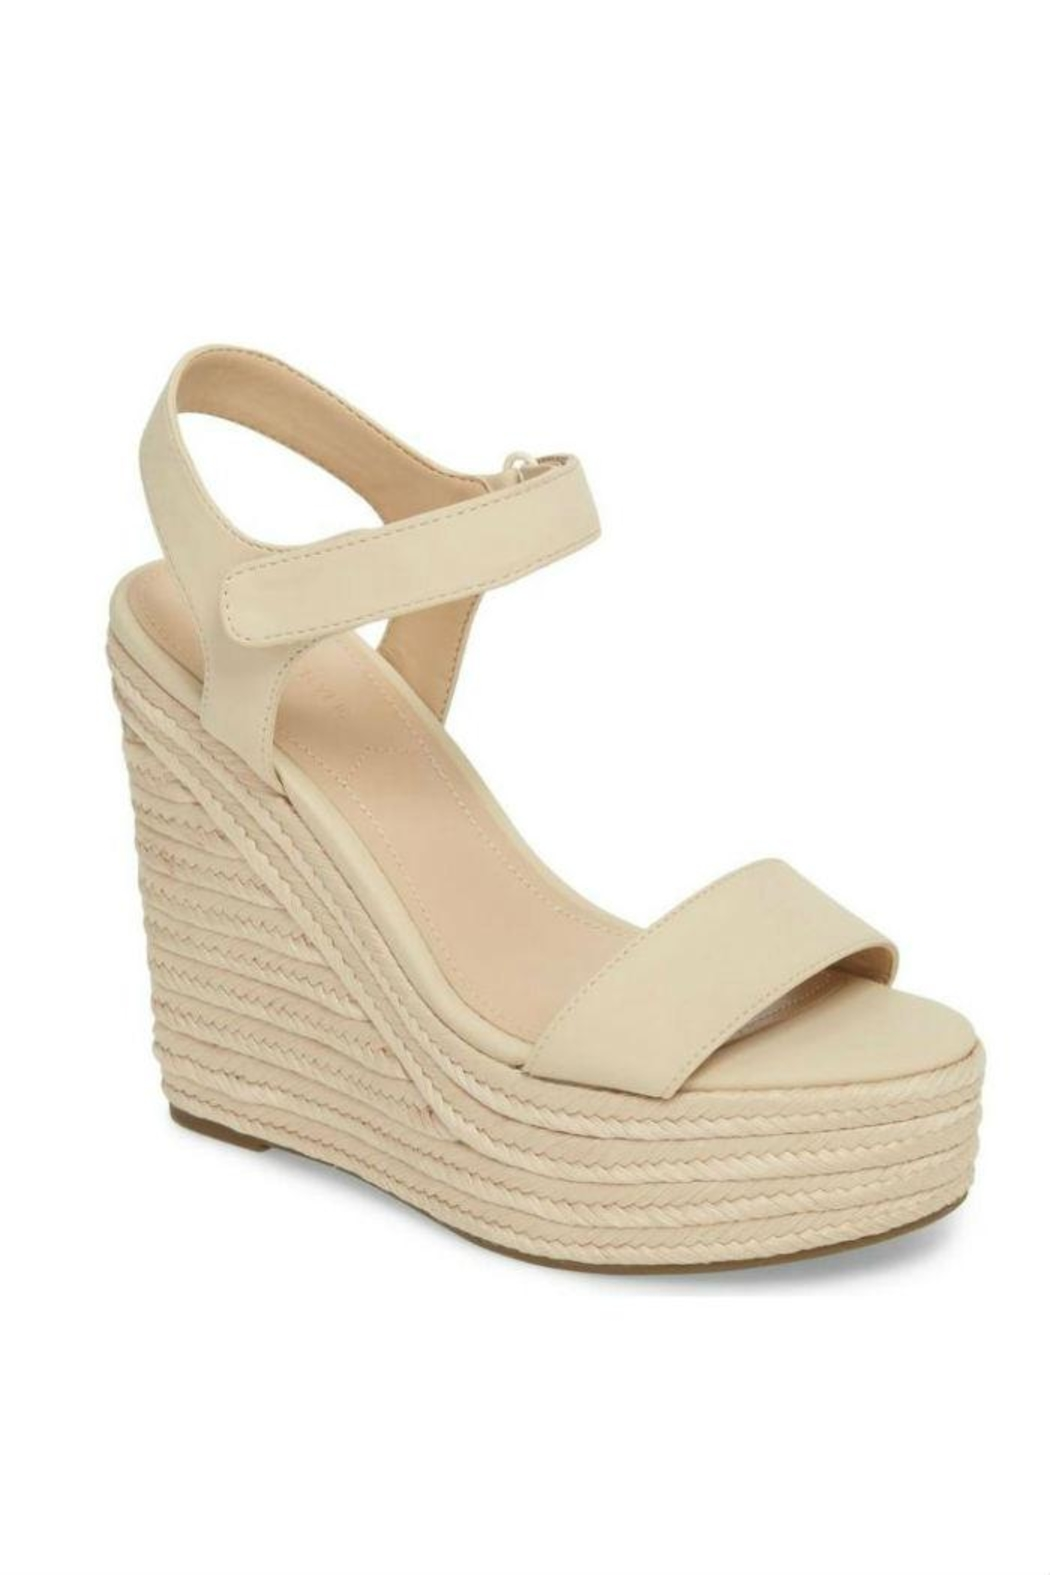 Kendall + Kylie Grand Wedge Sandal - Front Full Image